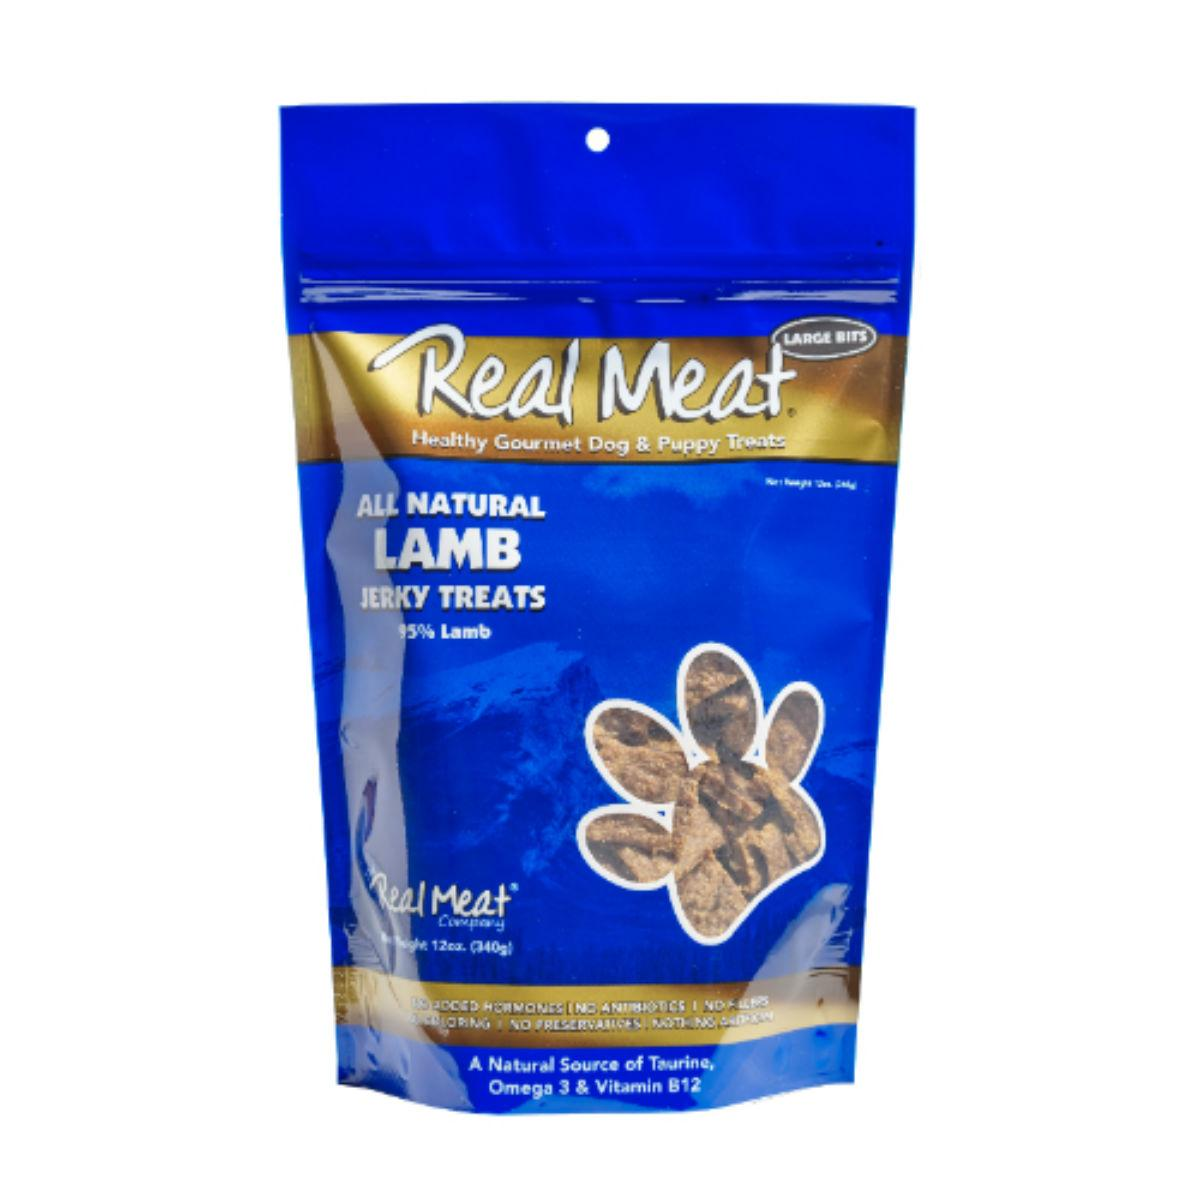 Real Meat Lamb Bitz Jerky Dog Treats